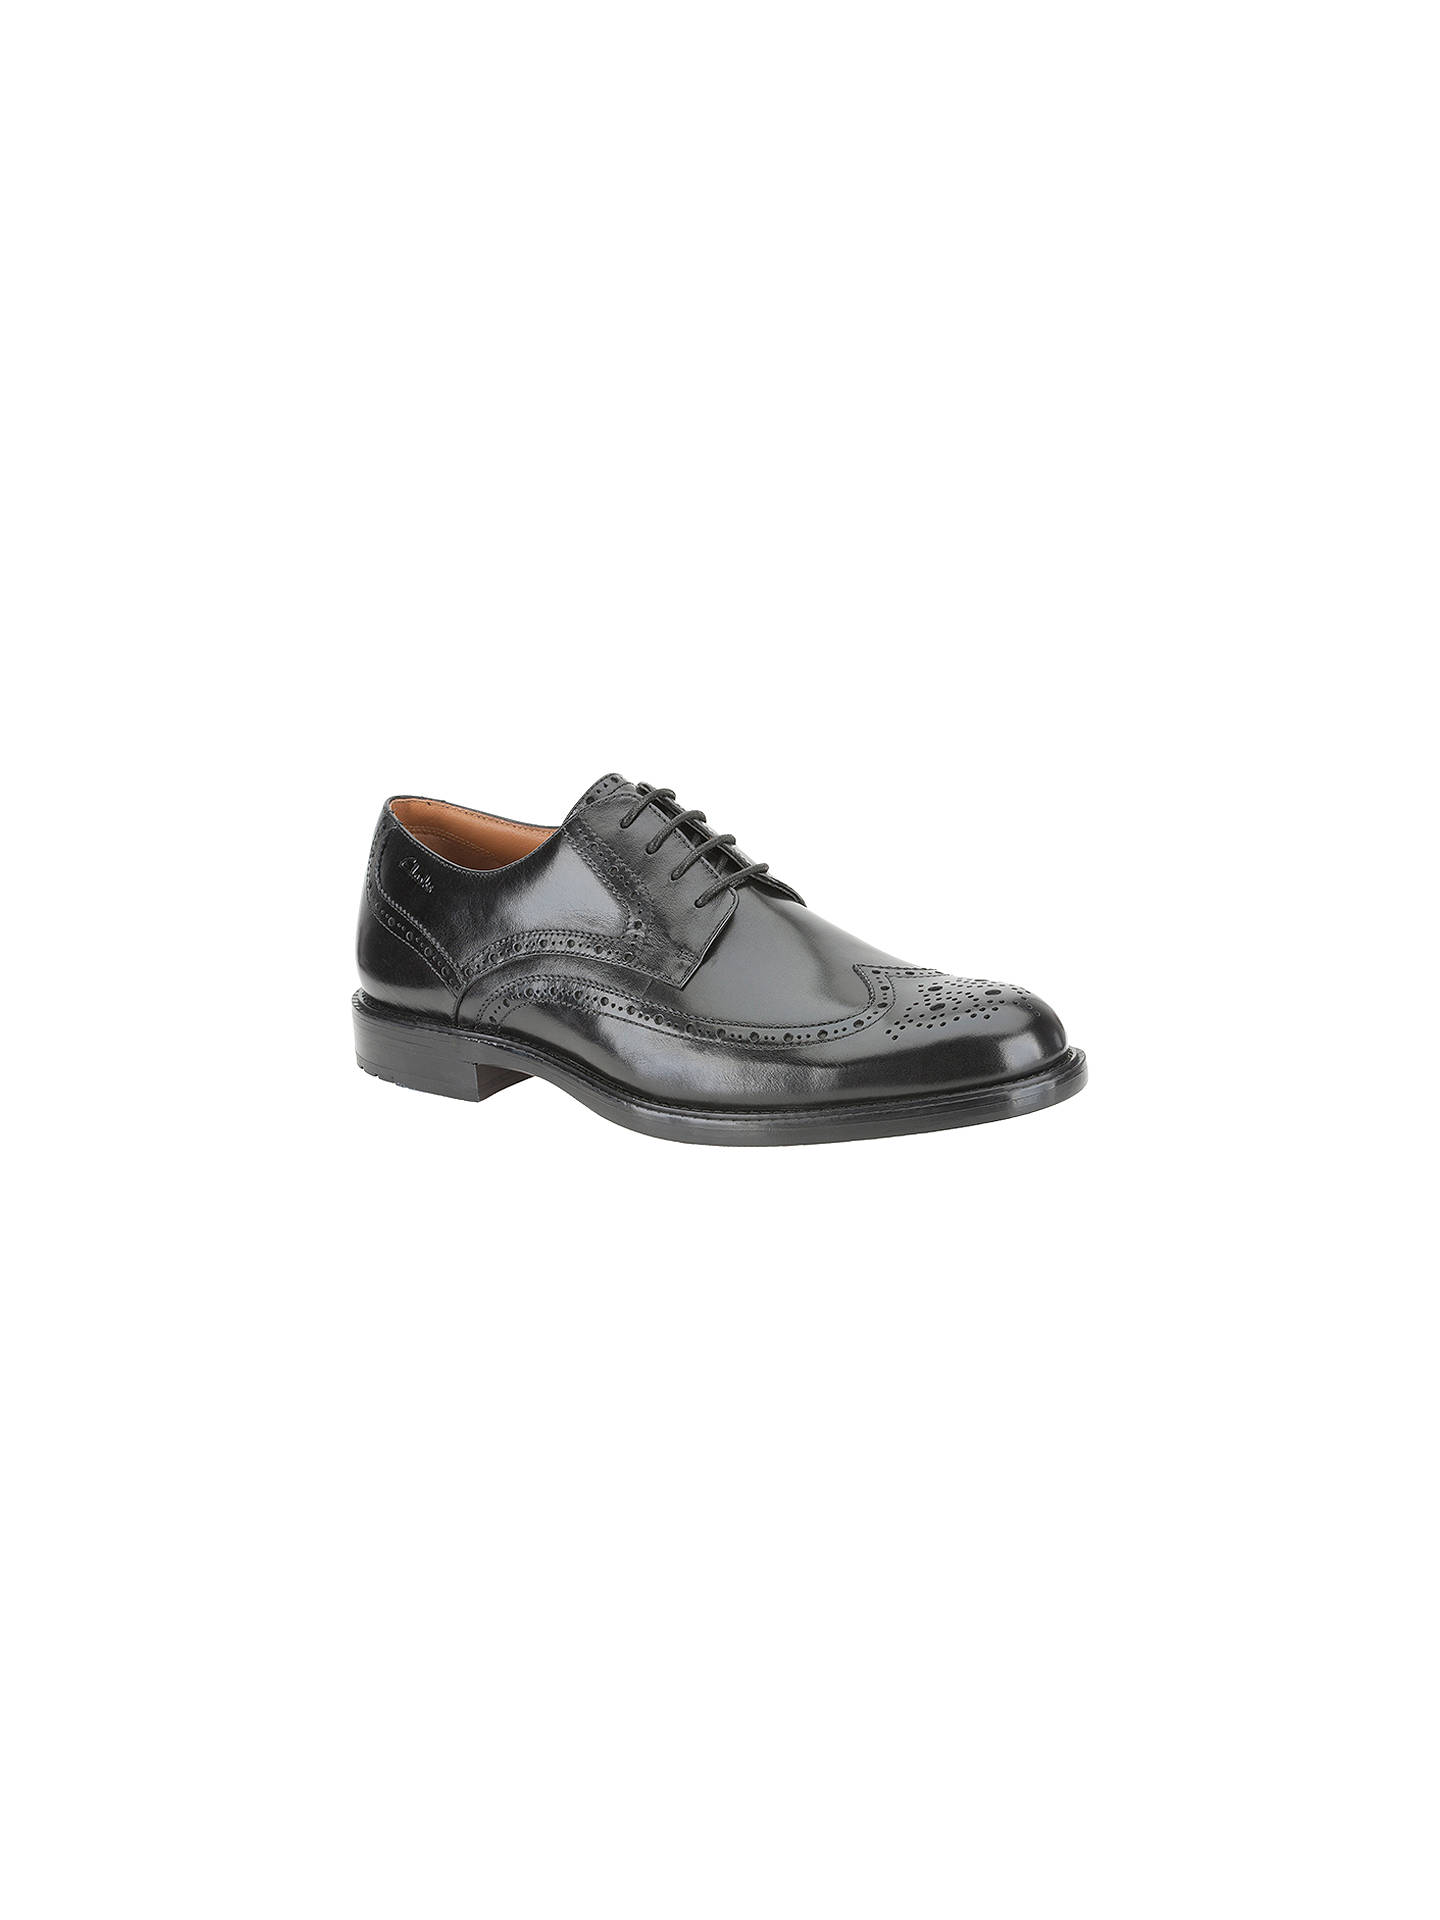 73bb182f740 Buy Clarks Dorset Limit Leather Brogue Derby Shoes